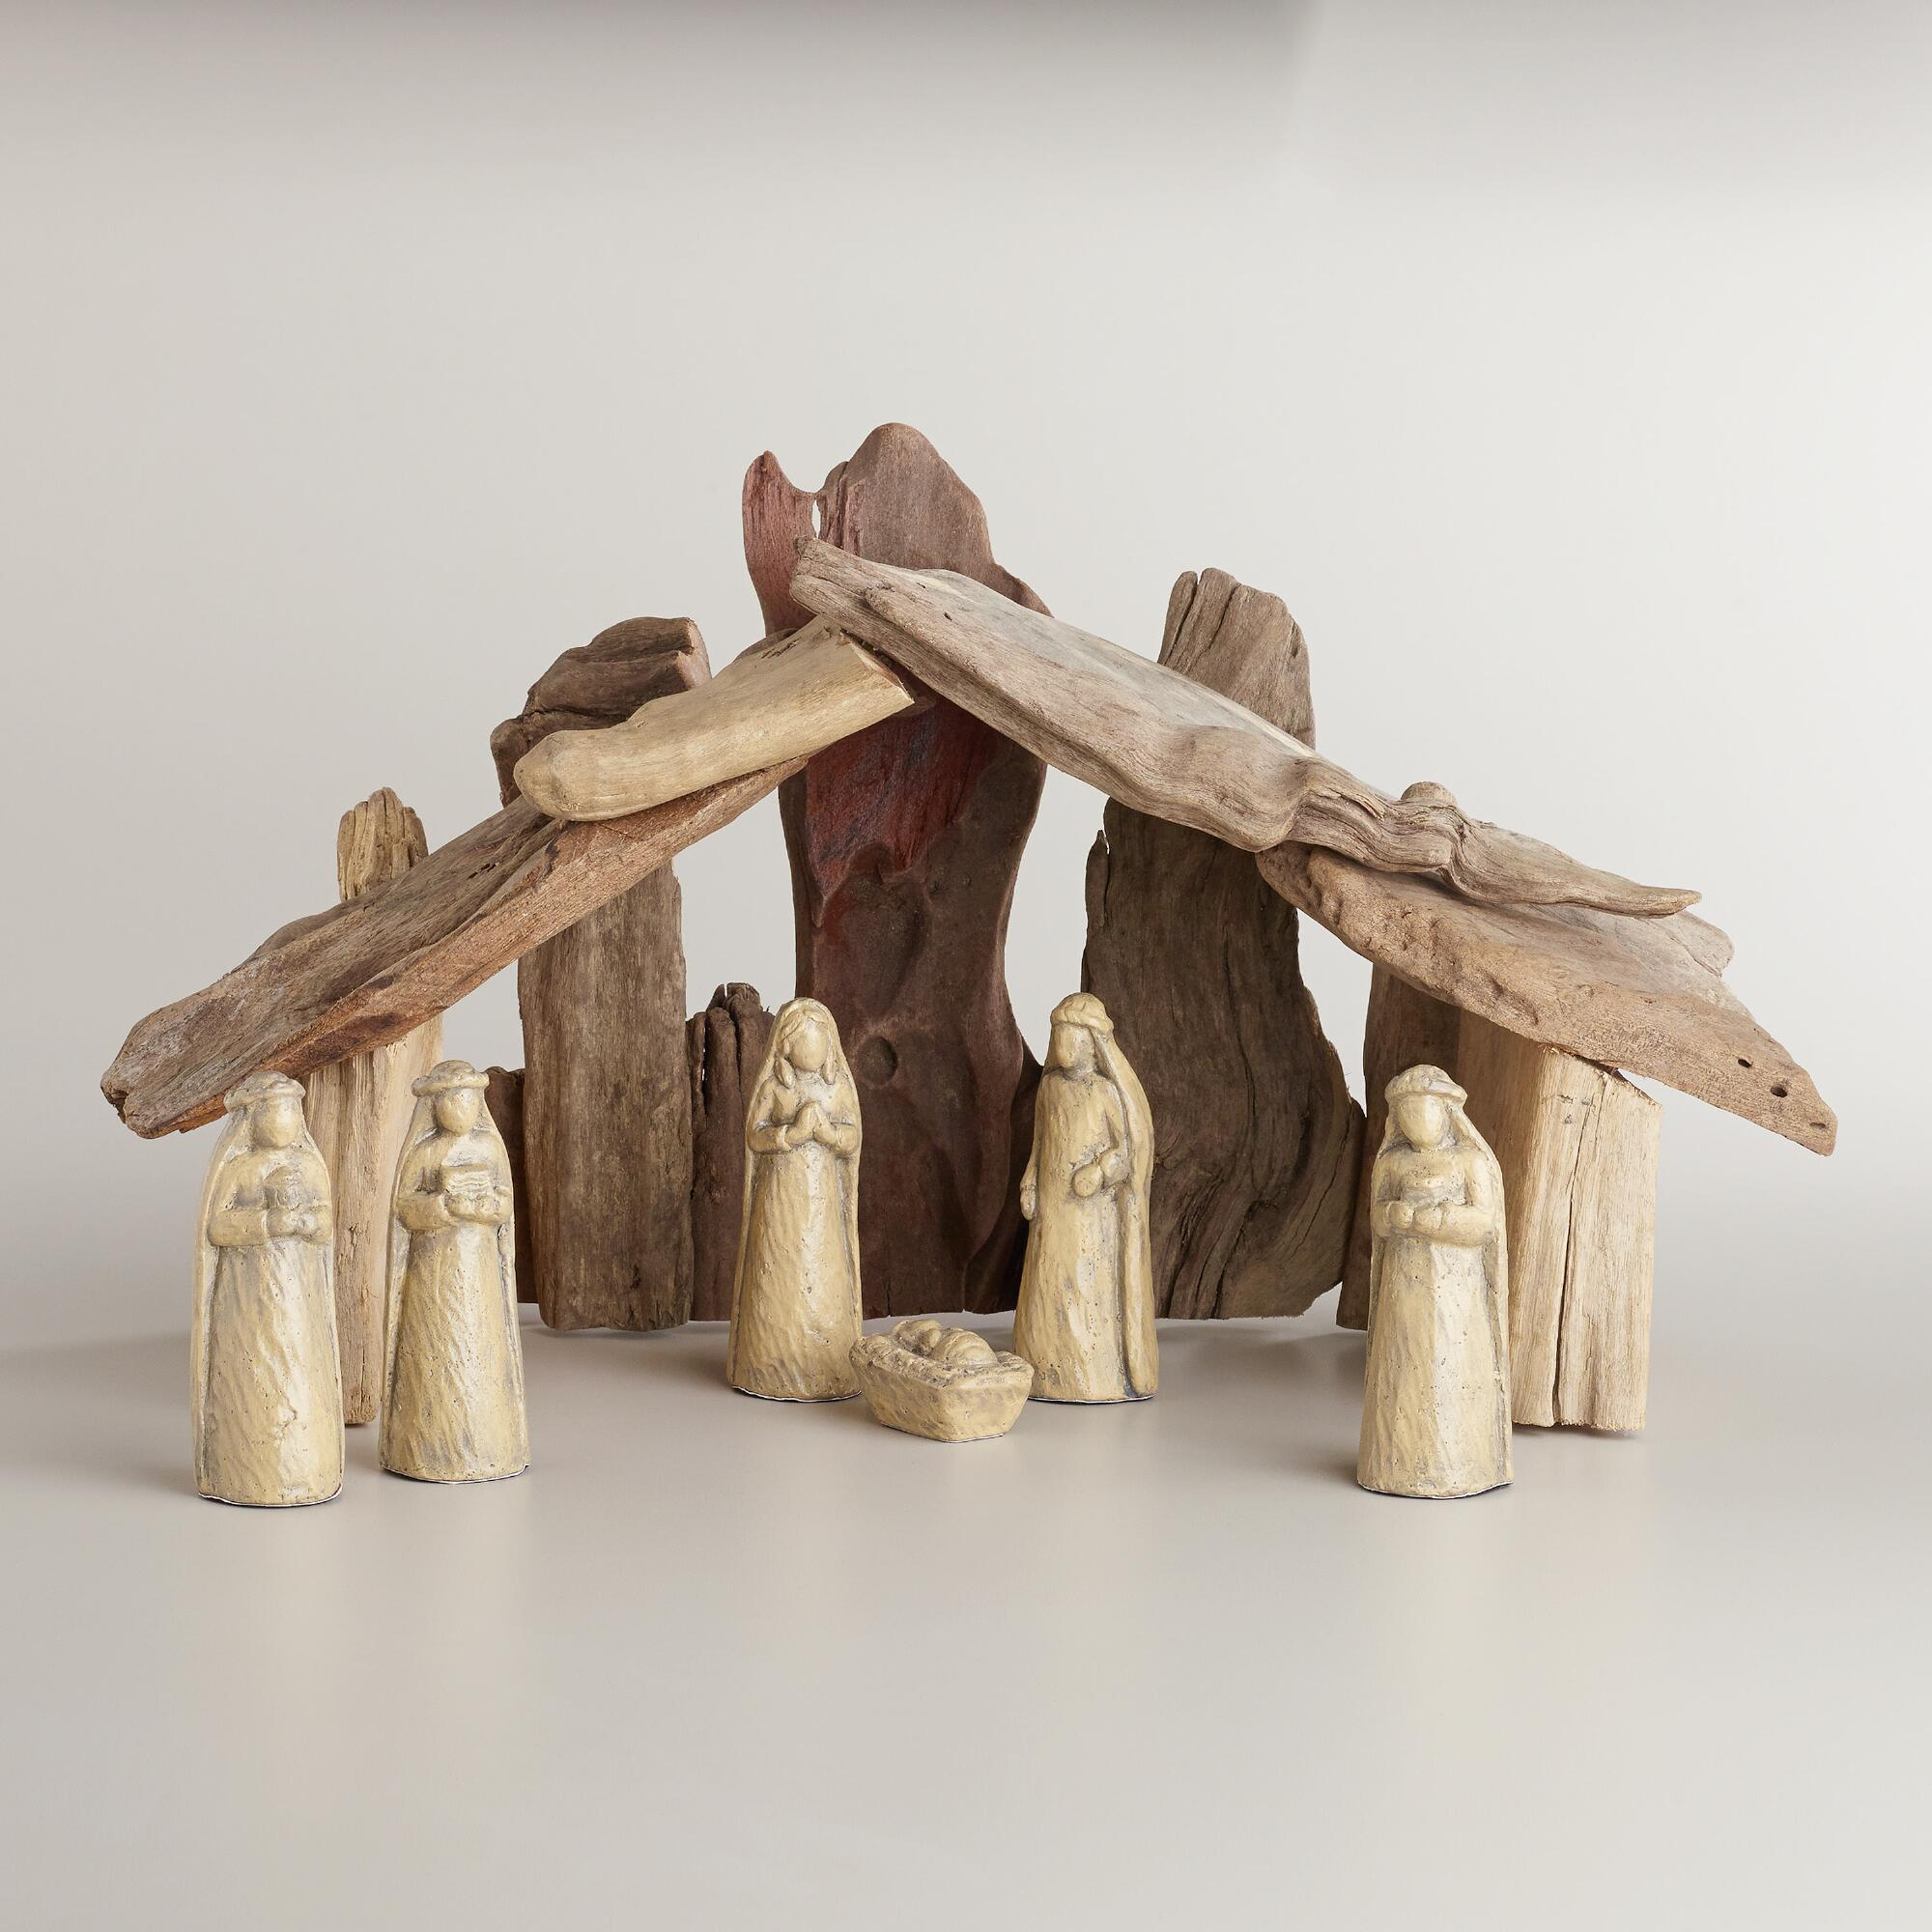 Driftwood nativity scene